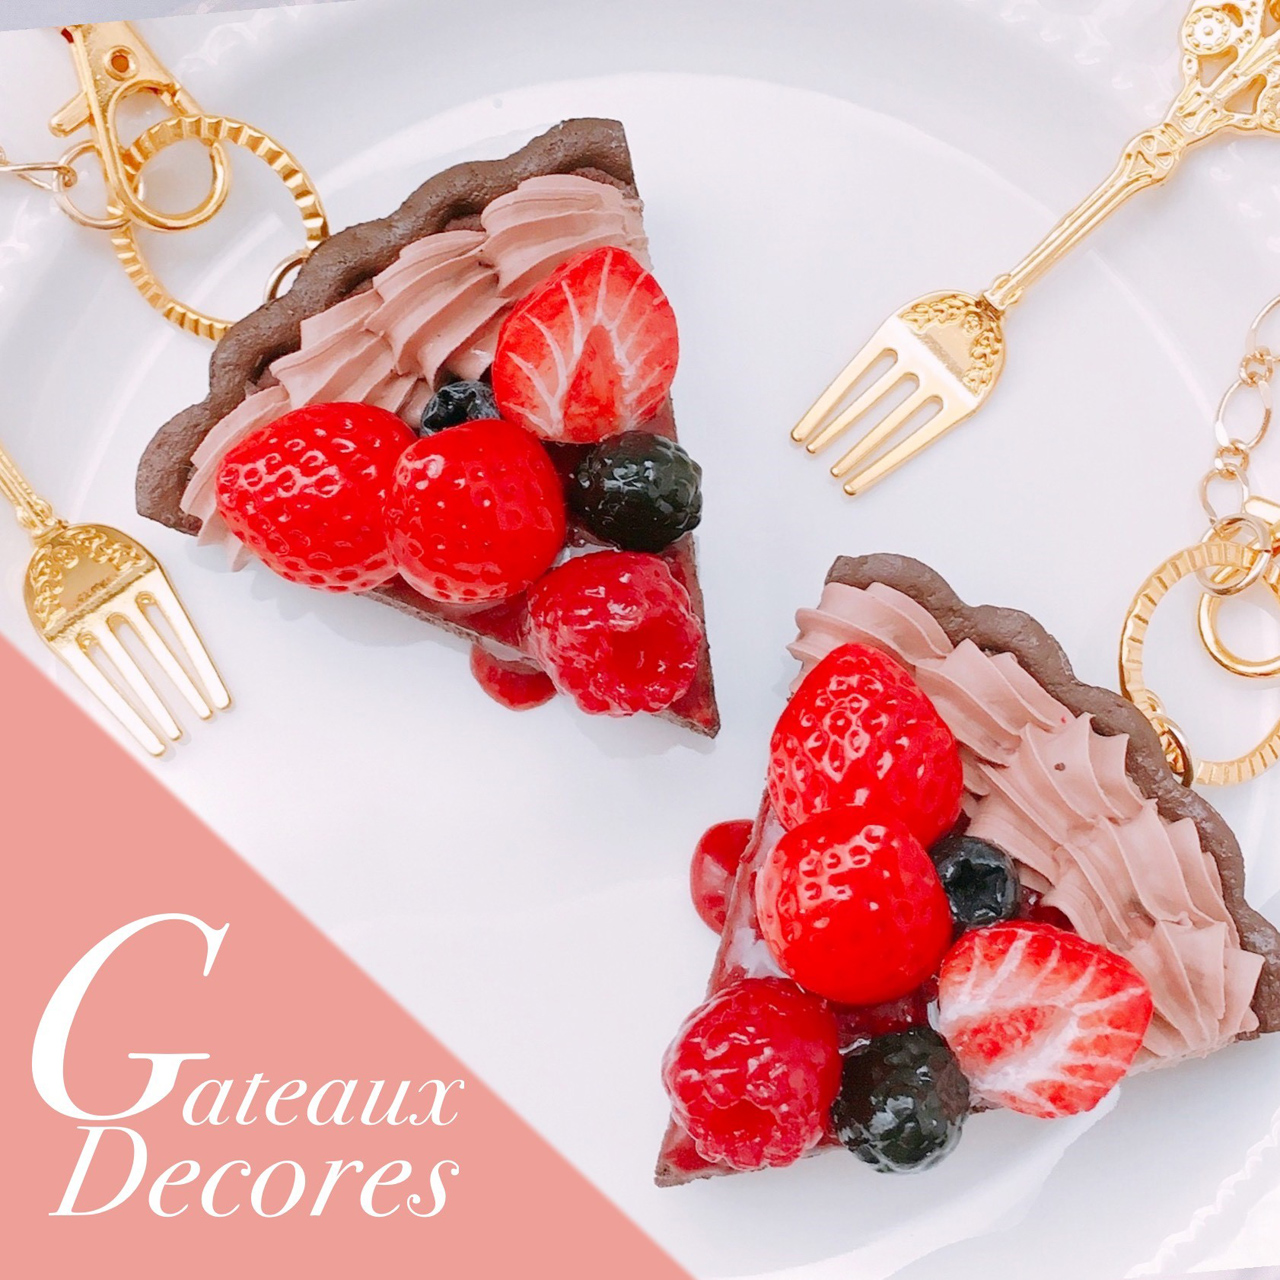 gateaux decores - ガトーデコレ